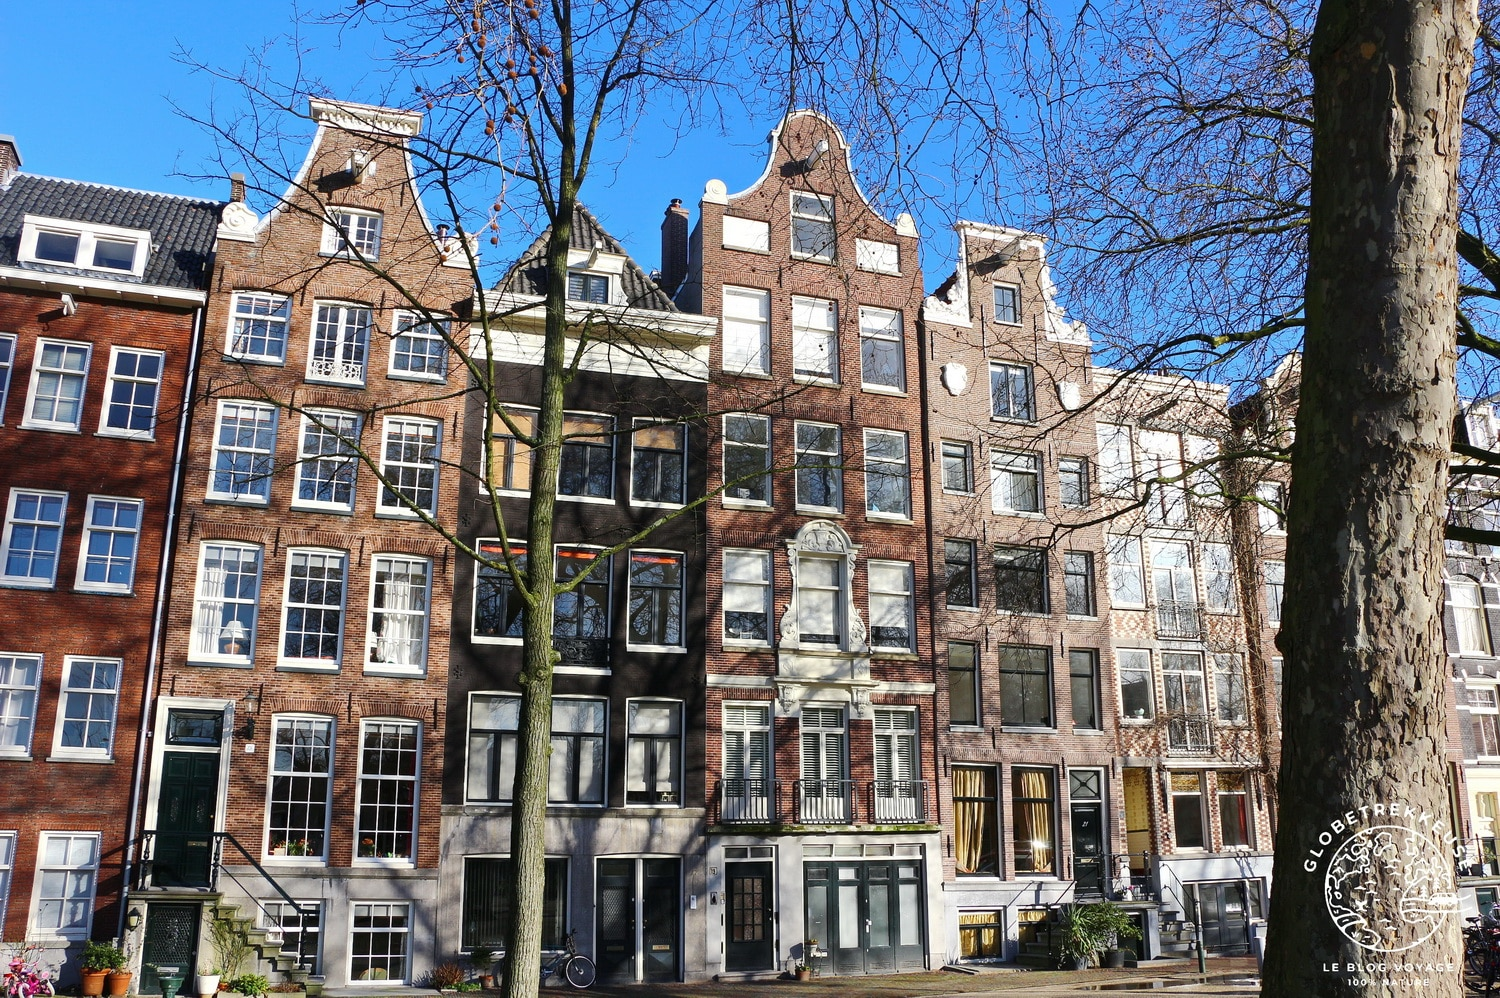 visiter amsterdam 3 jours canaux